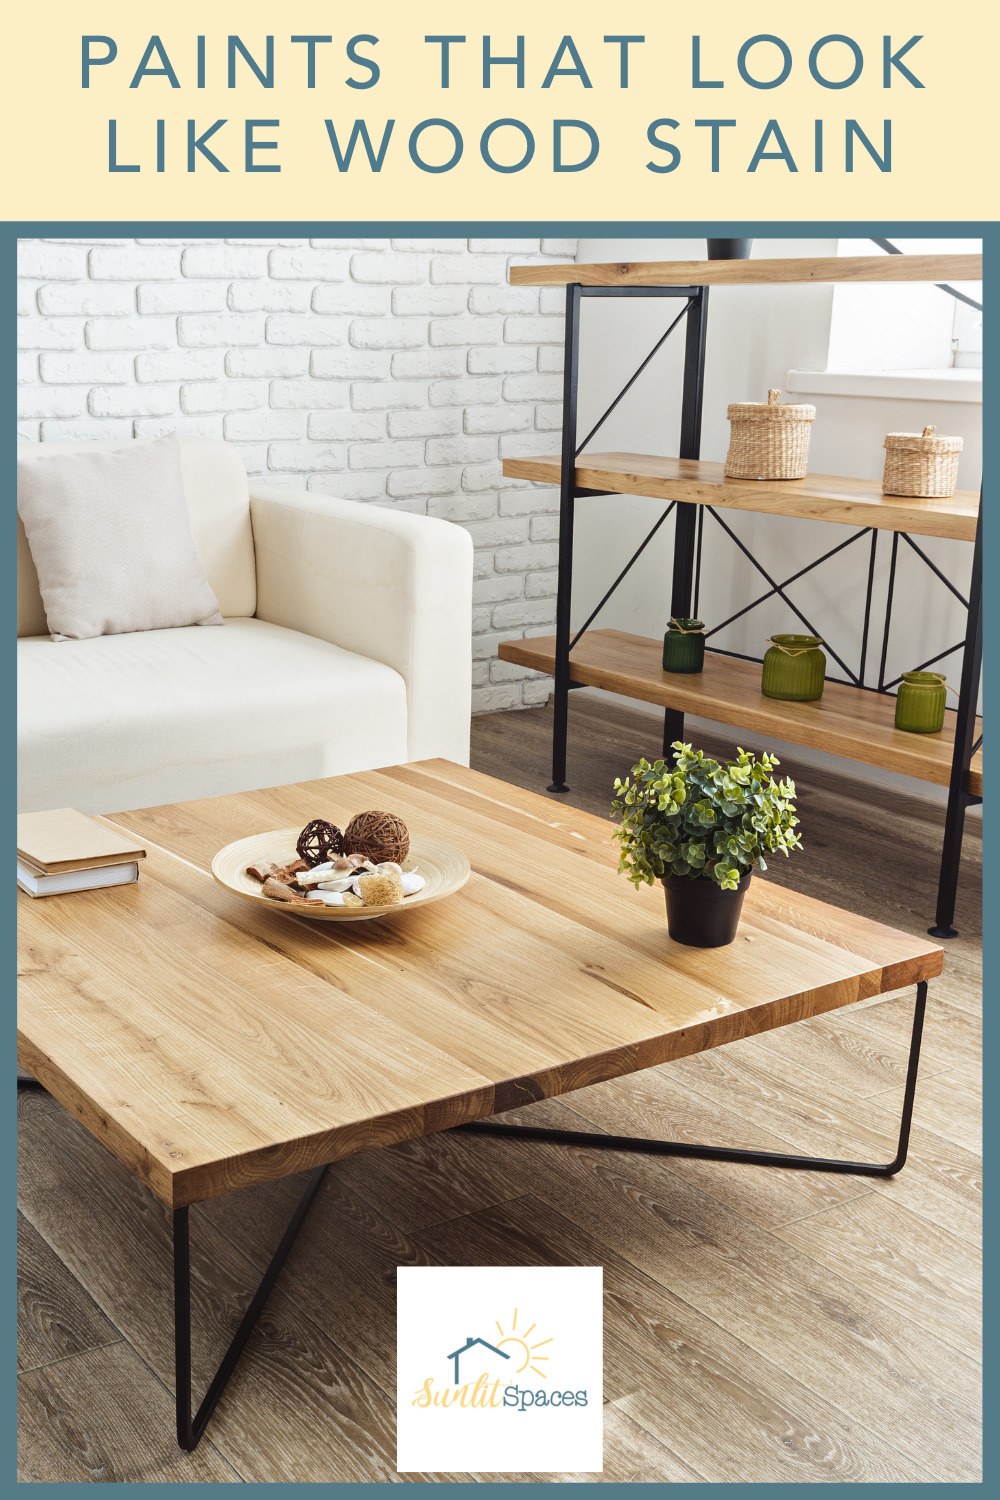 Sunlitspaces.com has all you need to know to create a perfect, personalized space. Know the best techniques for giving old furniture new life. Learn how you can paint your furniture to look like it was wood stained!